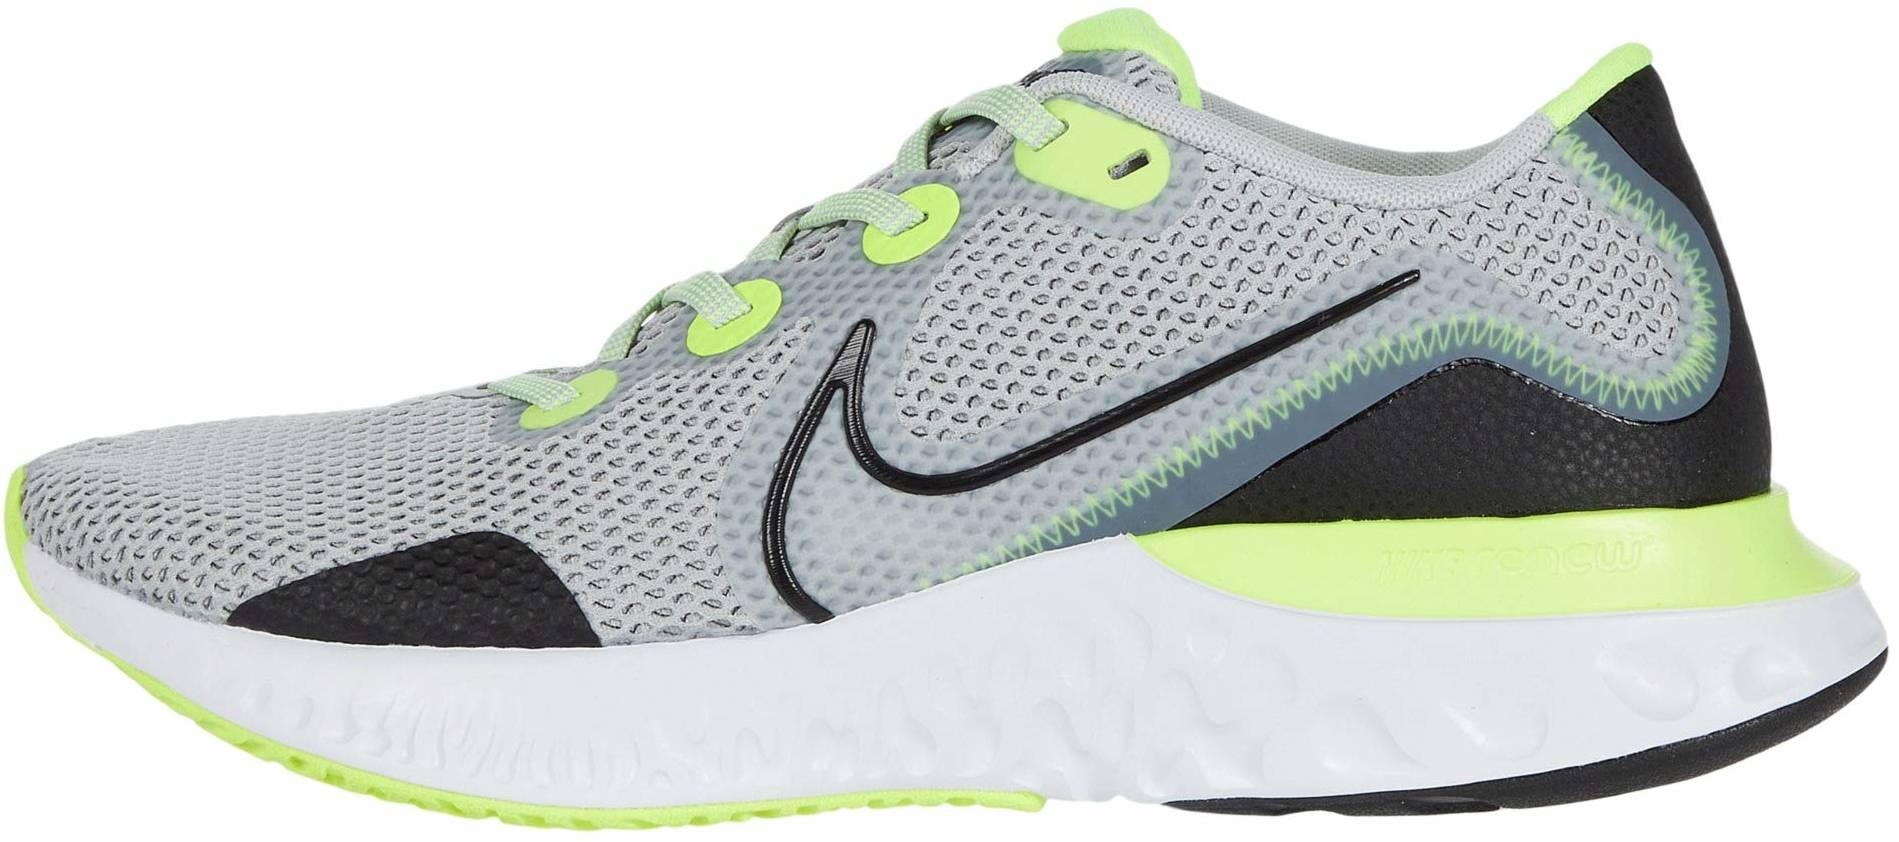 Save 54% on Low Drop Running Shoes (753